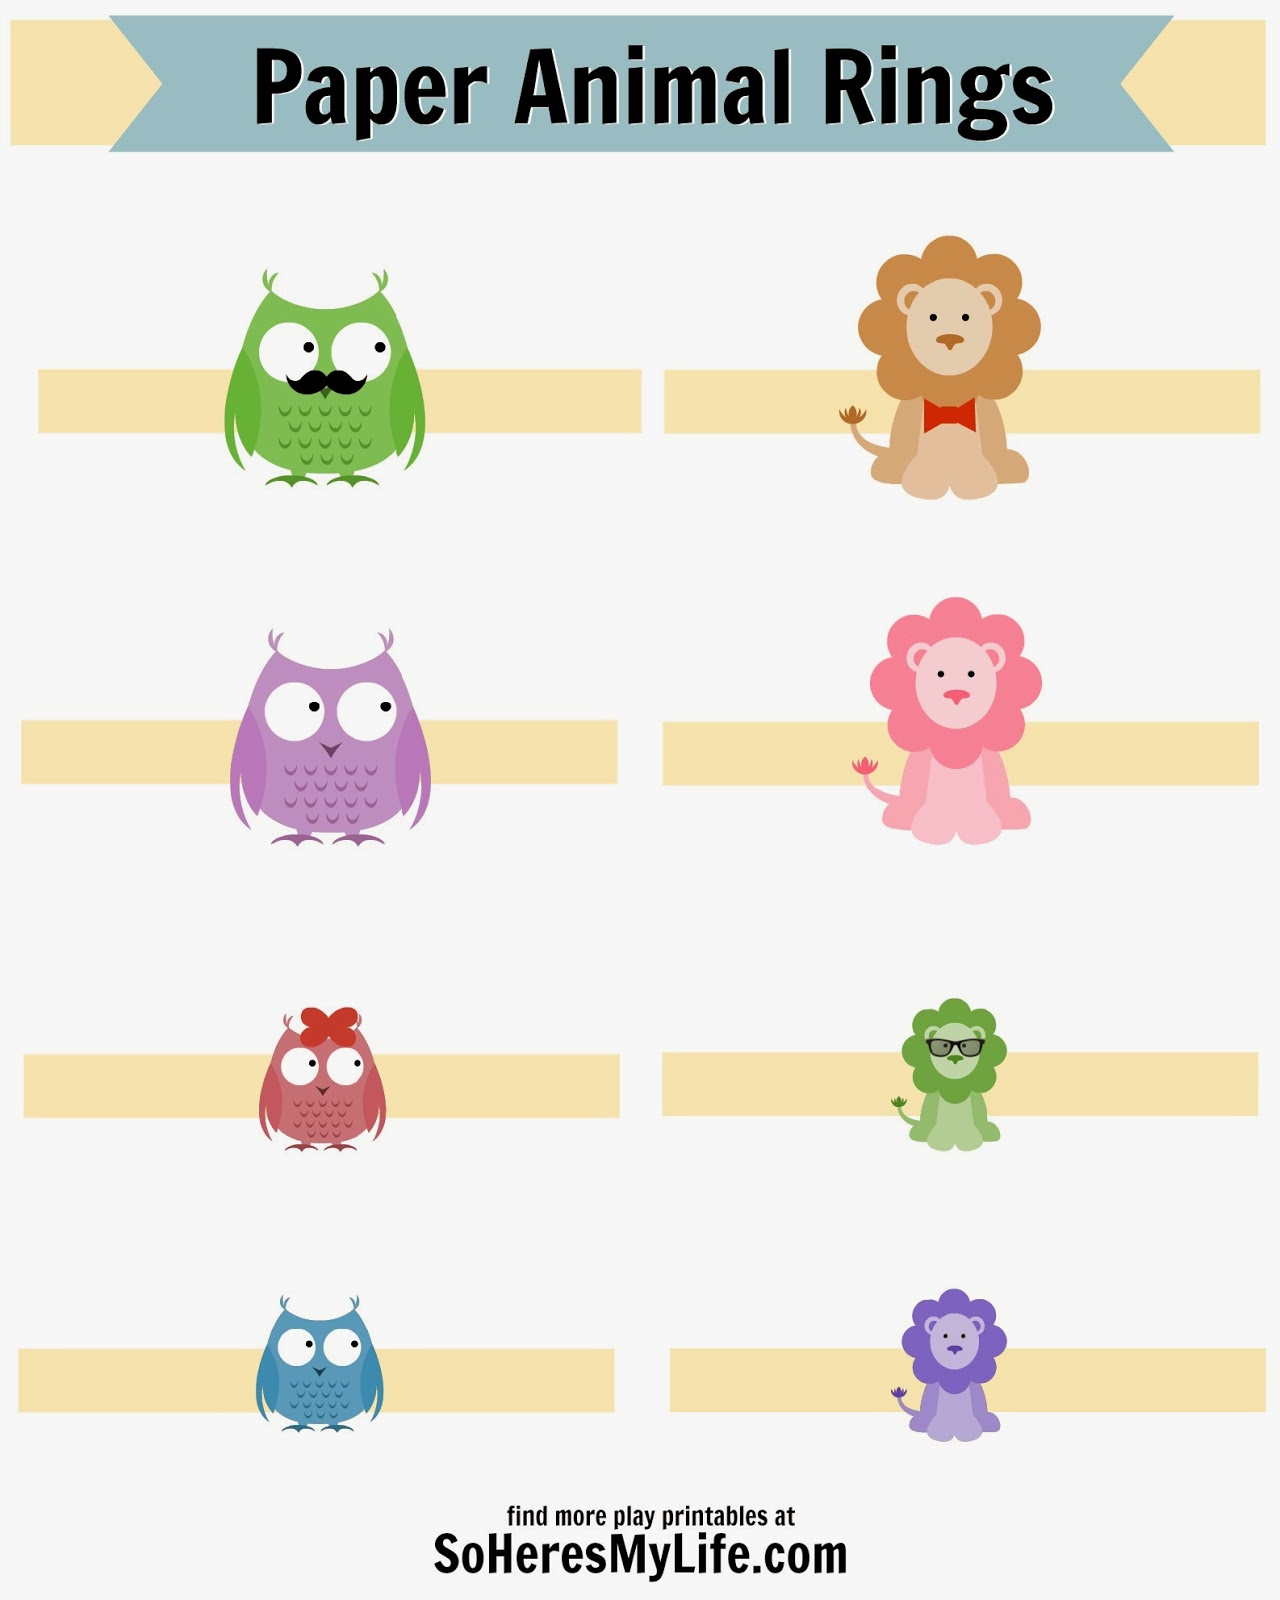 Super fun animal ring printables - click through and get them!!